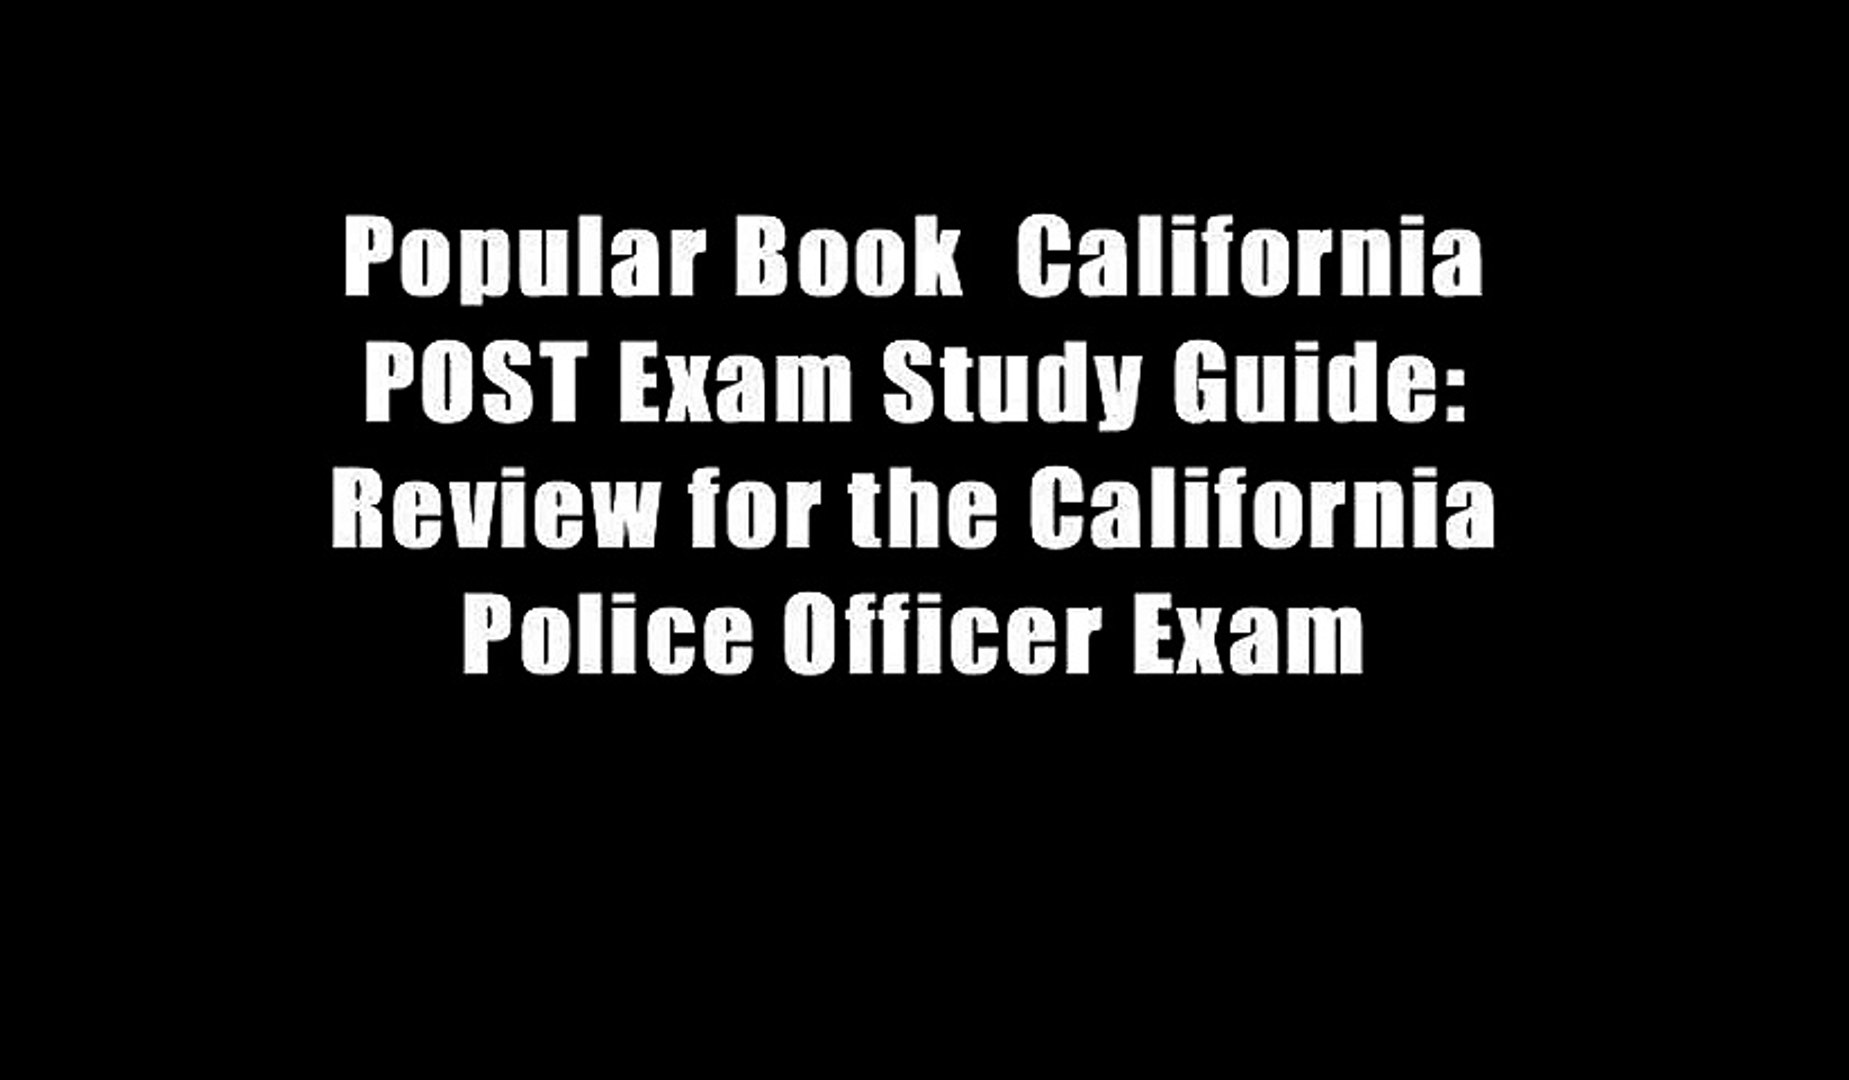 Popular Book  California POST Exam Study Guide: Review for the California Police Officer Exam